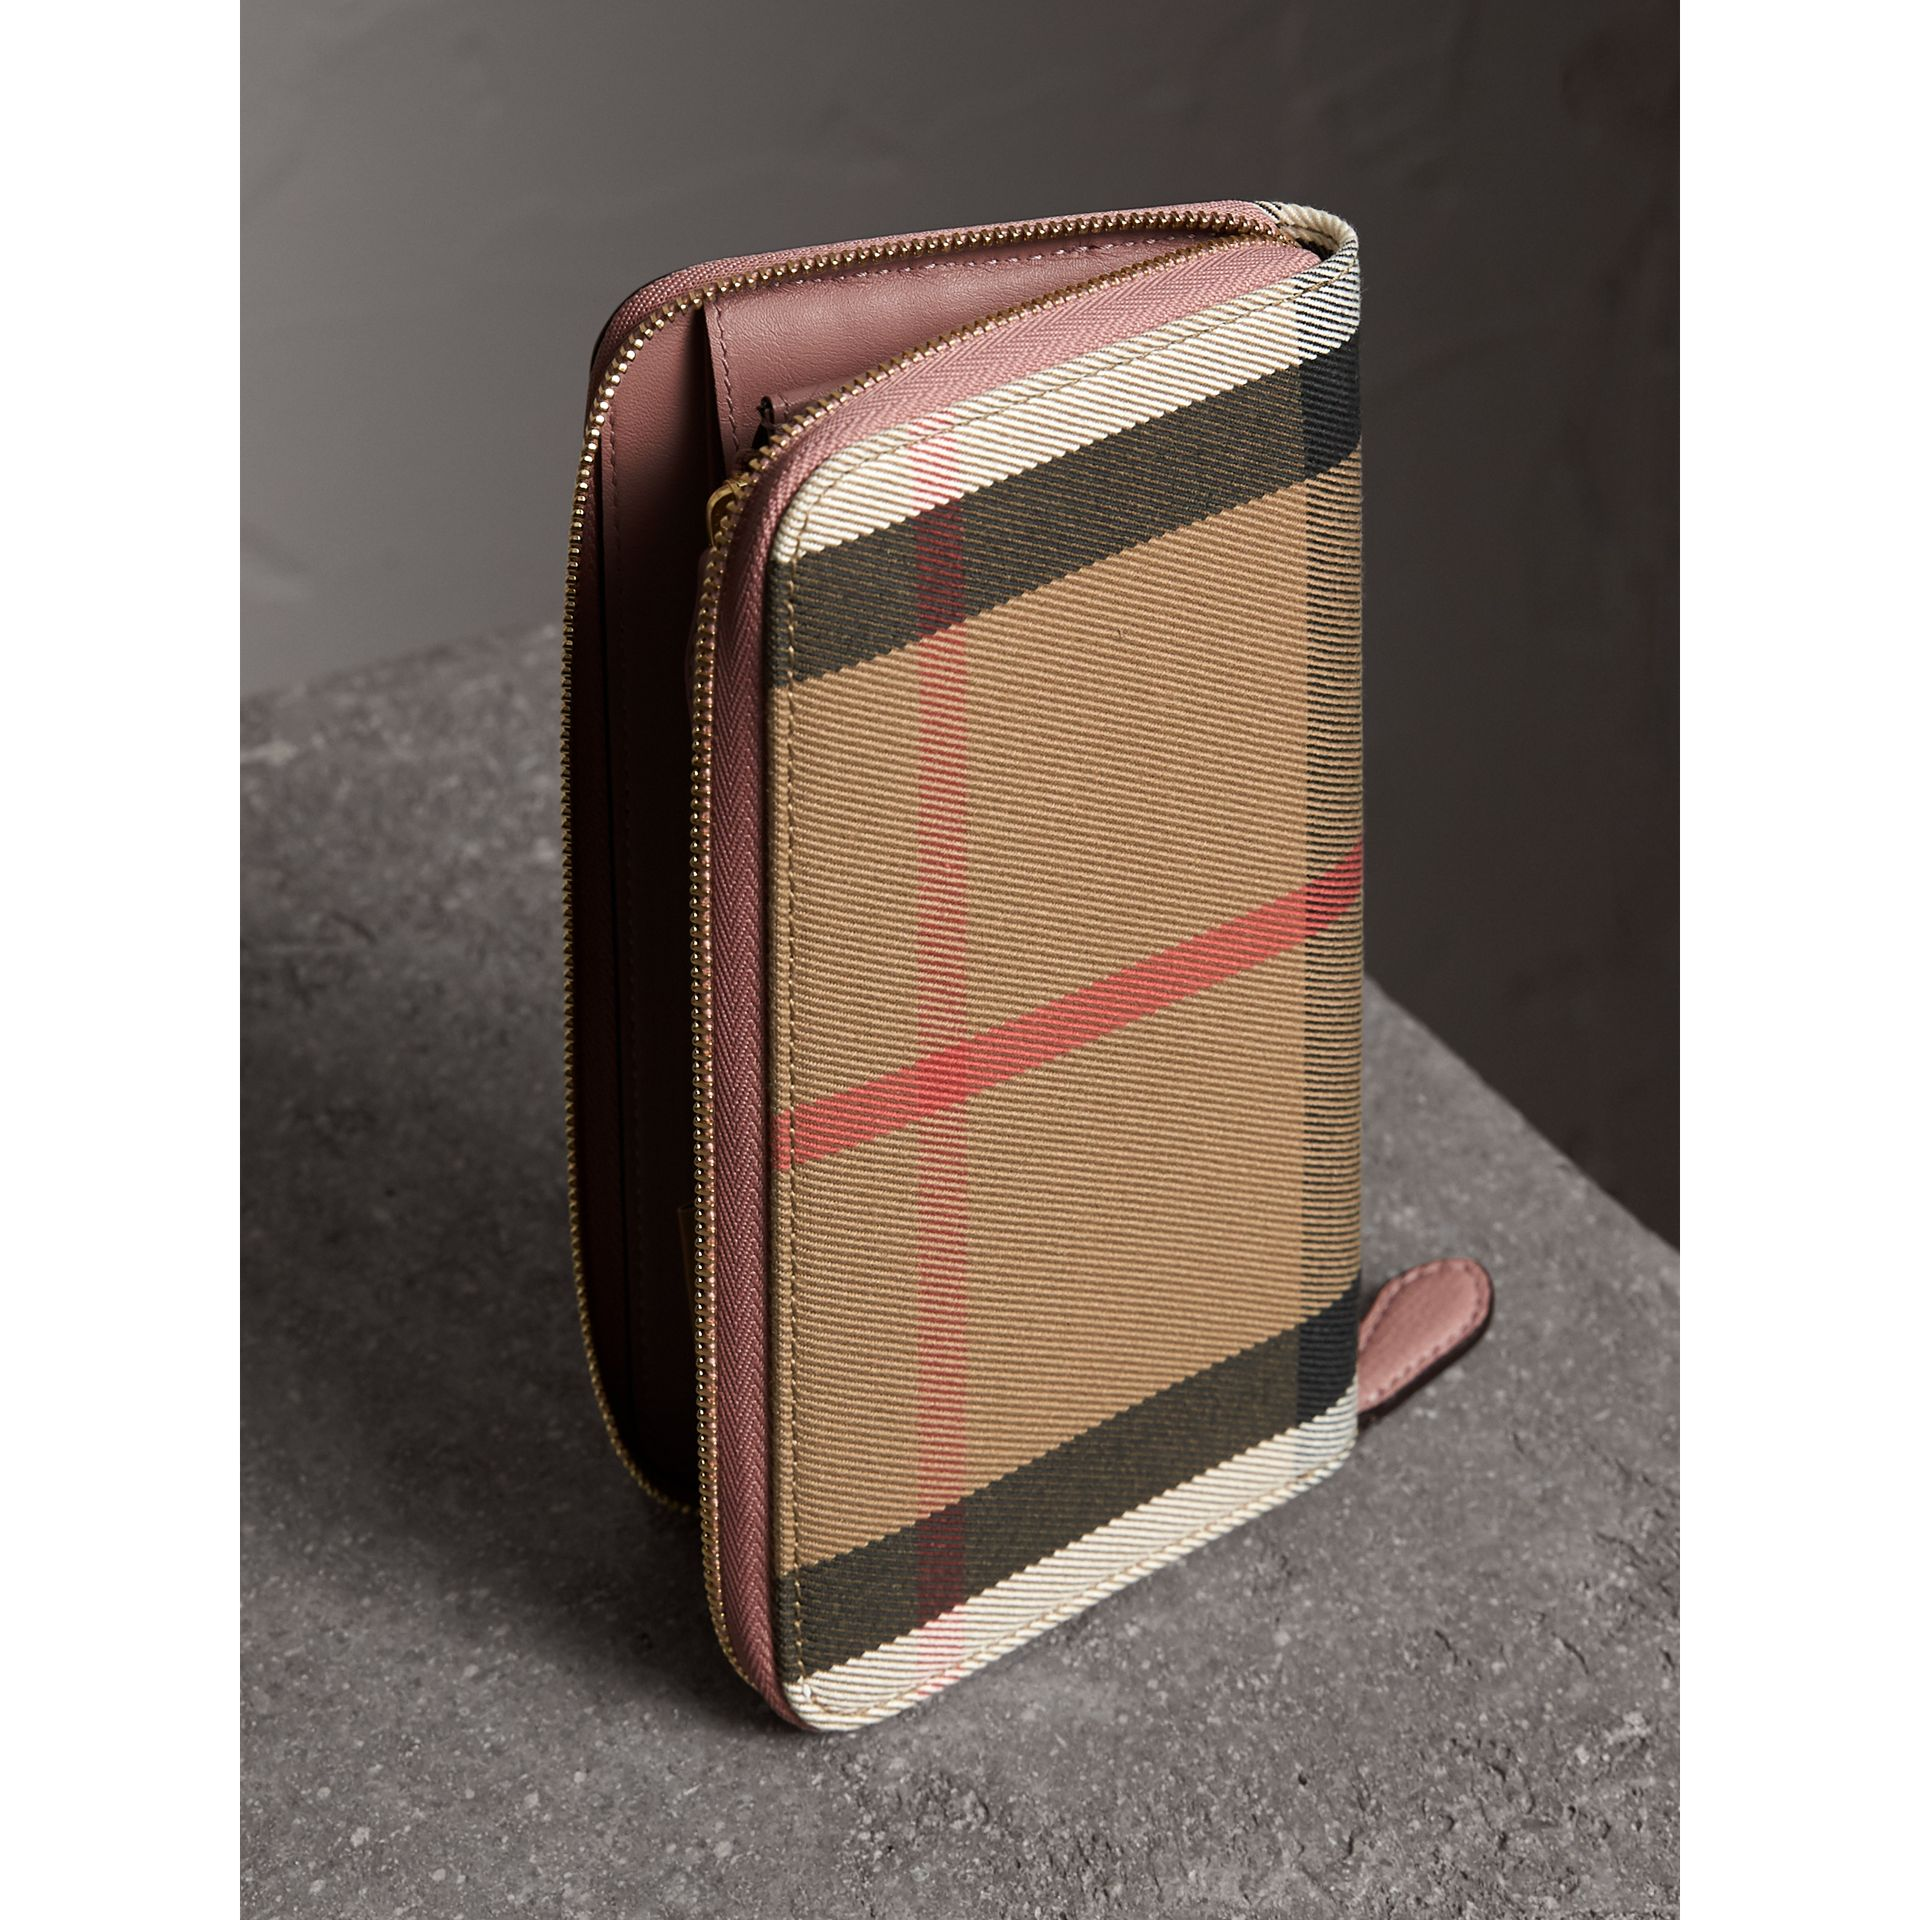 House Check and Leather Ziparound Wallet in Pale Orchid - Women | Burberry United Kingdom - gallery image 3